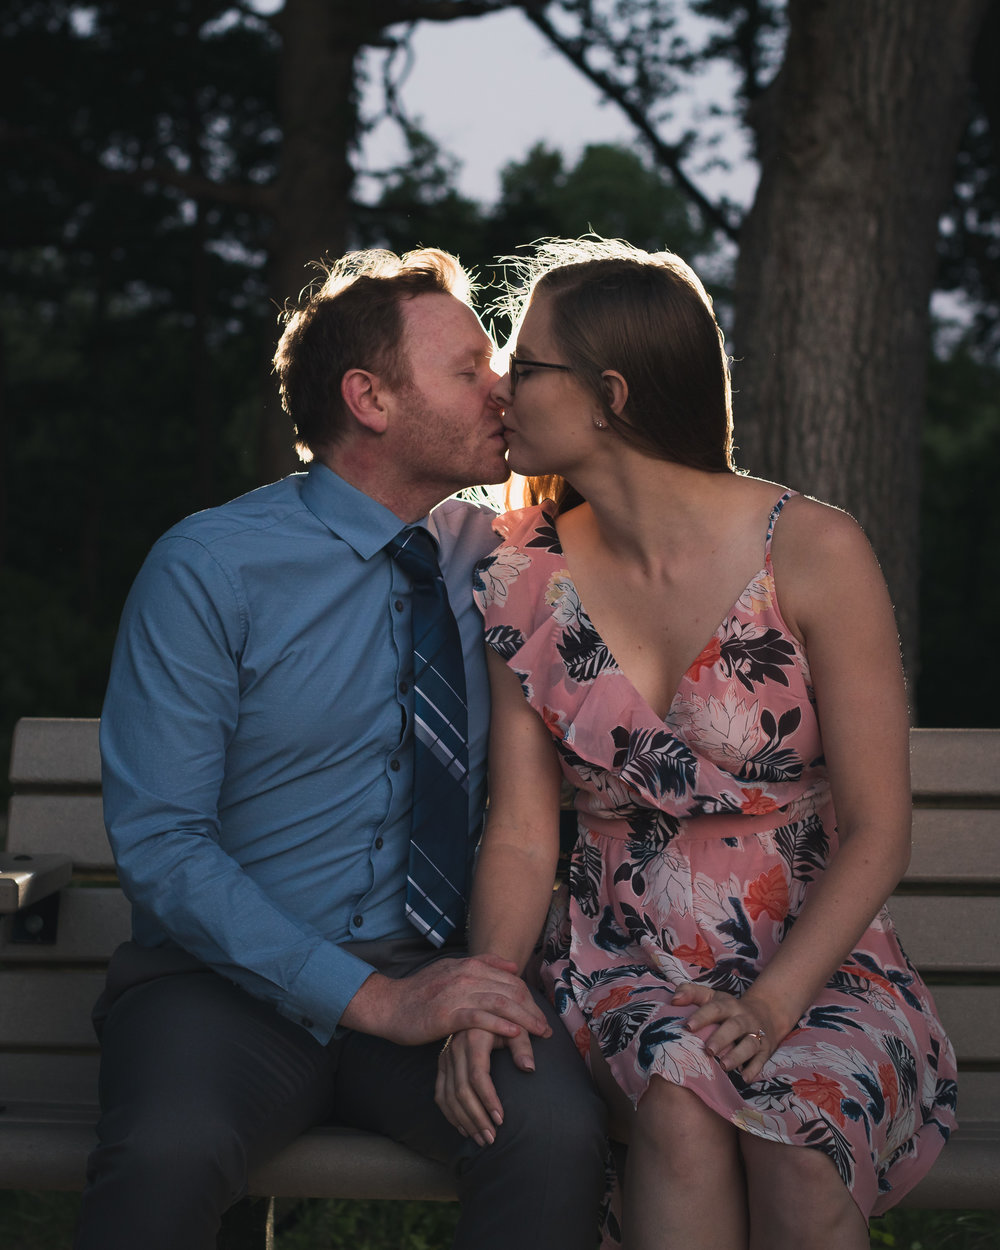 amanda+sean_engagement_20180603_46.jpg